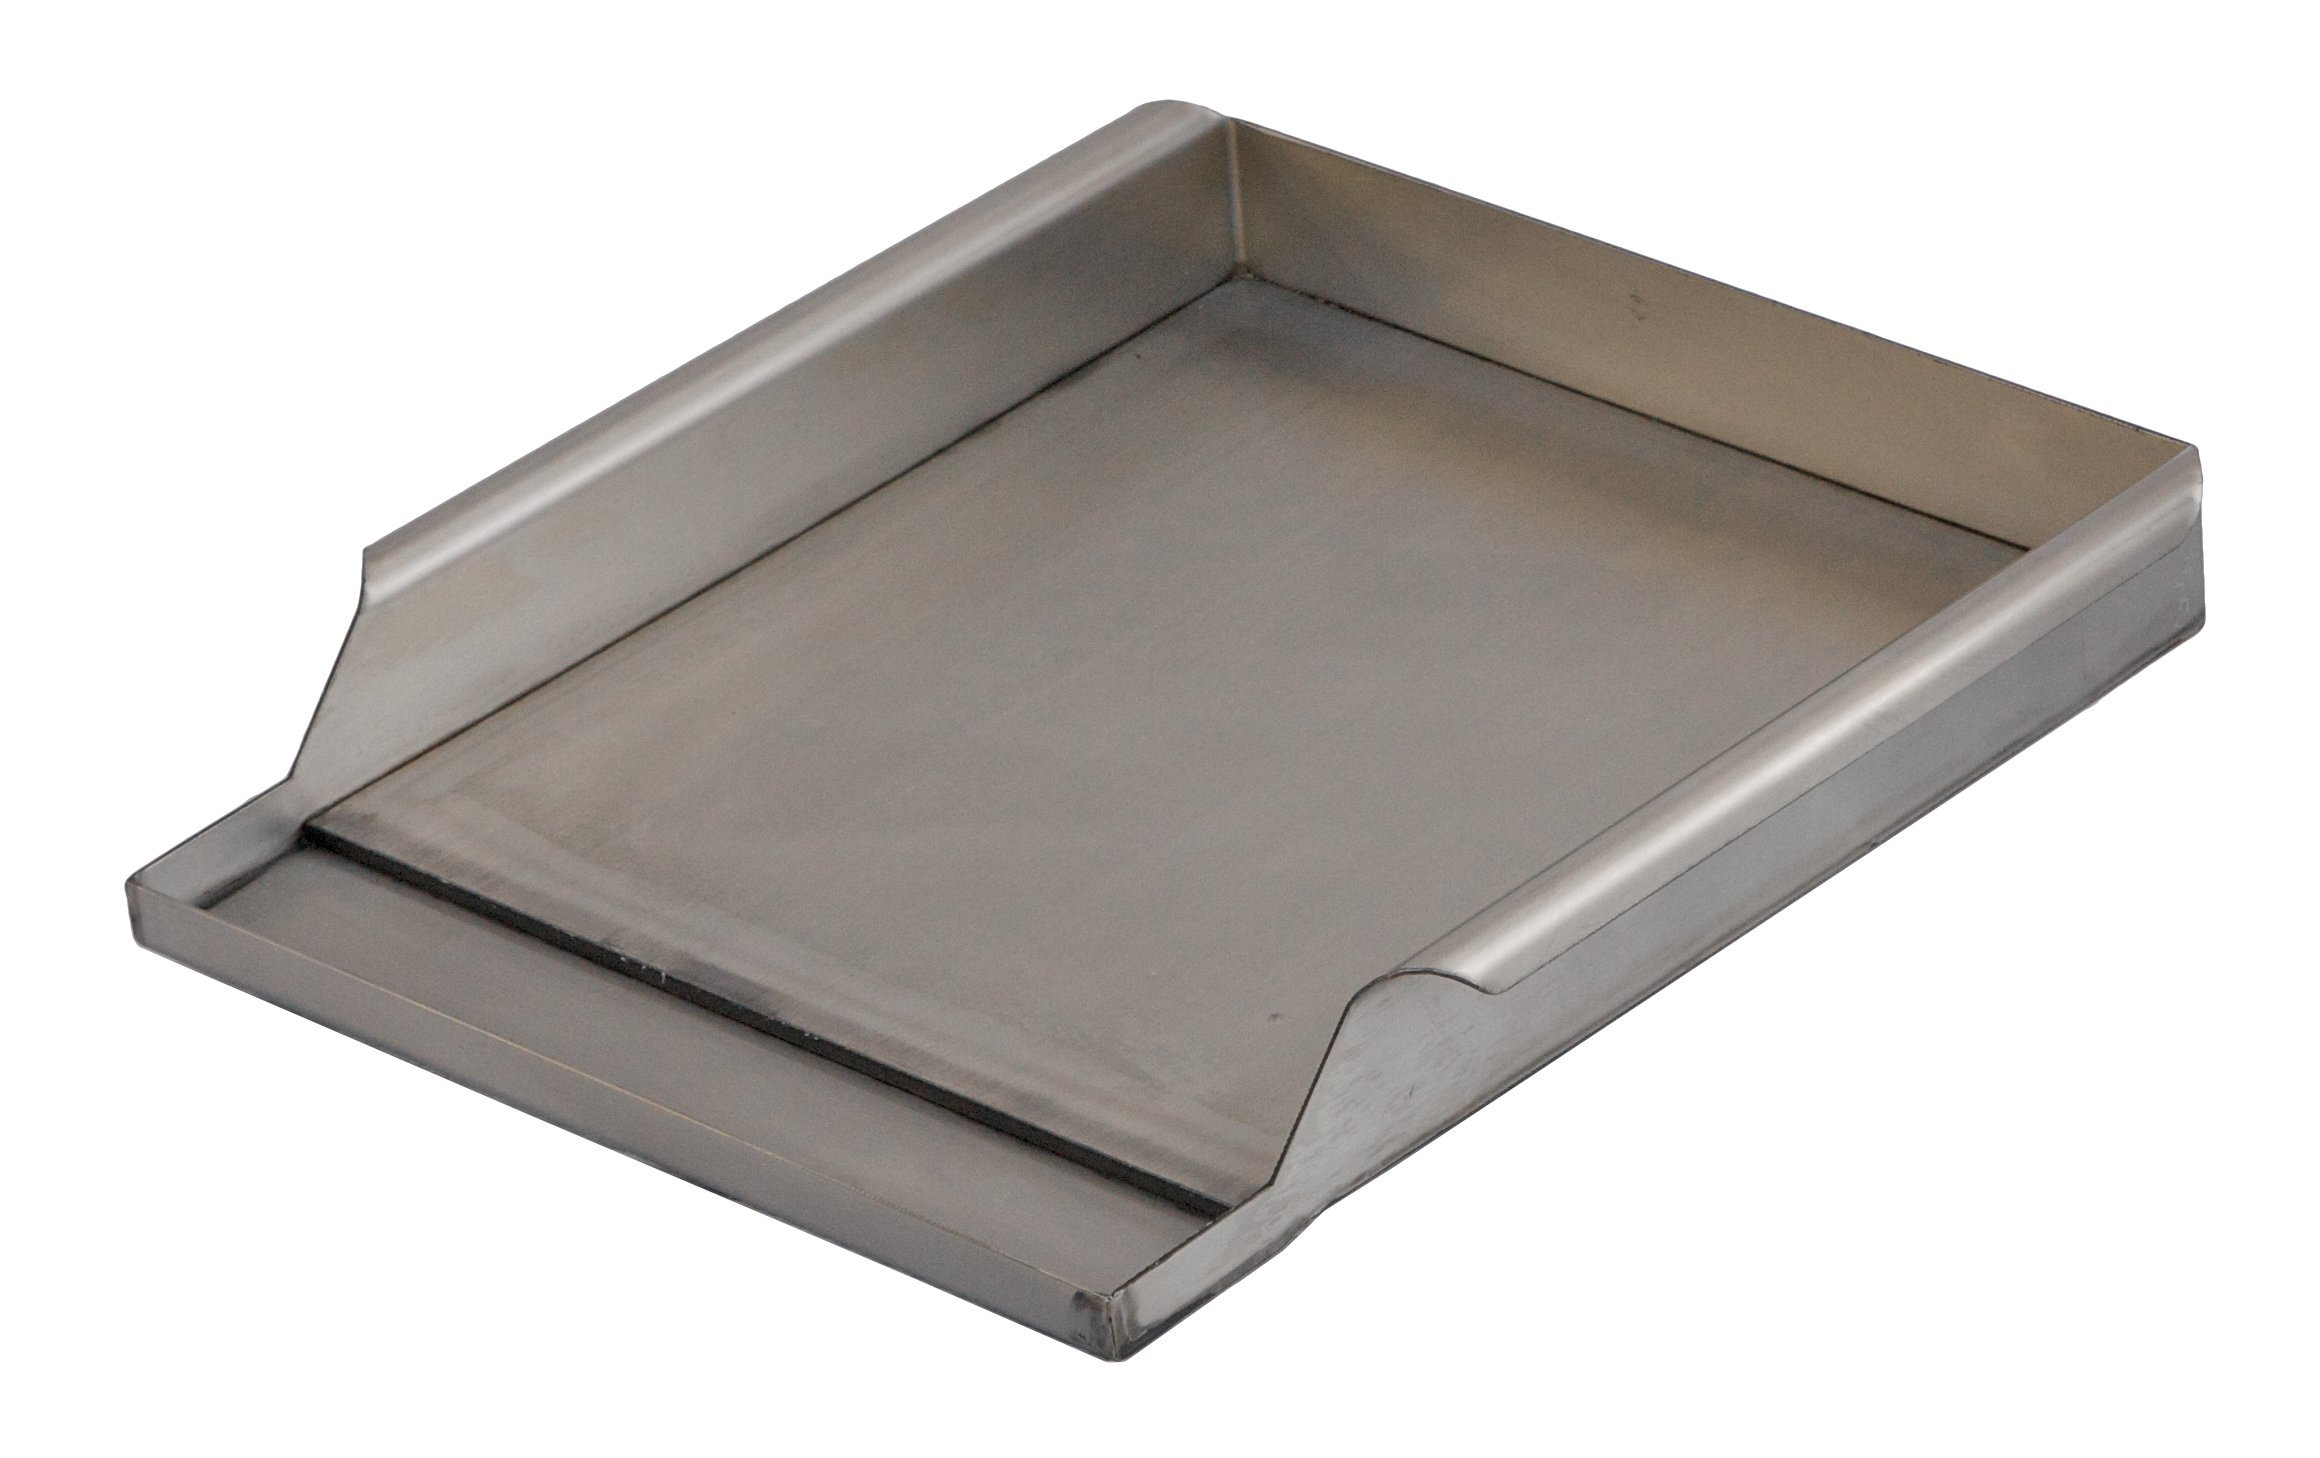 Solaire Stainless Steel Griddle Plate for Solaire AGBQ-27 Grills